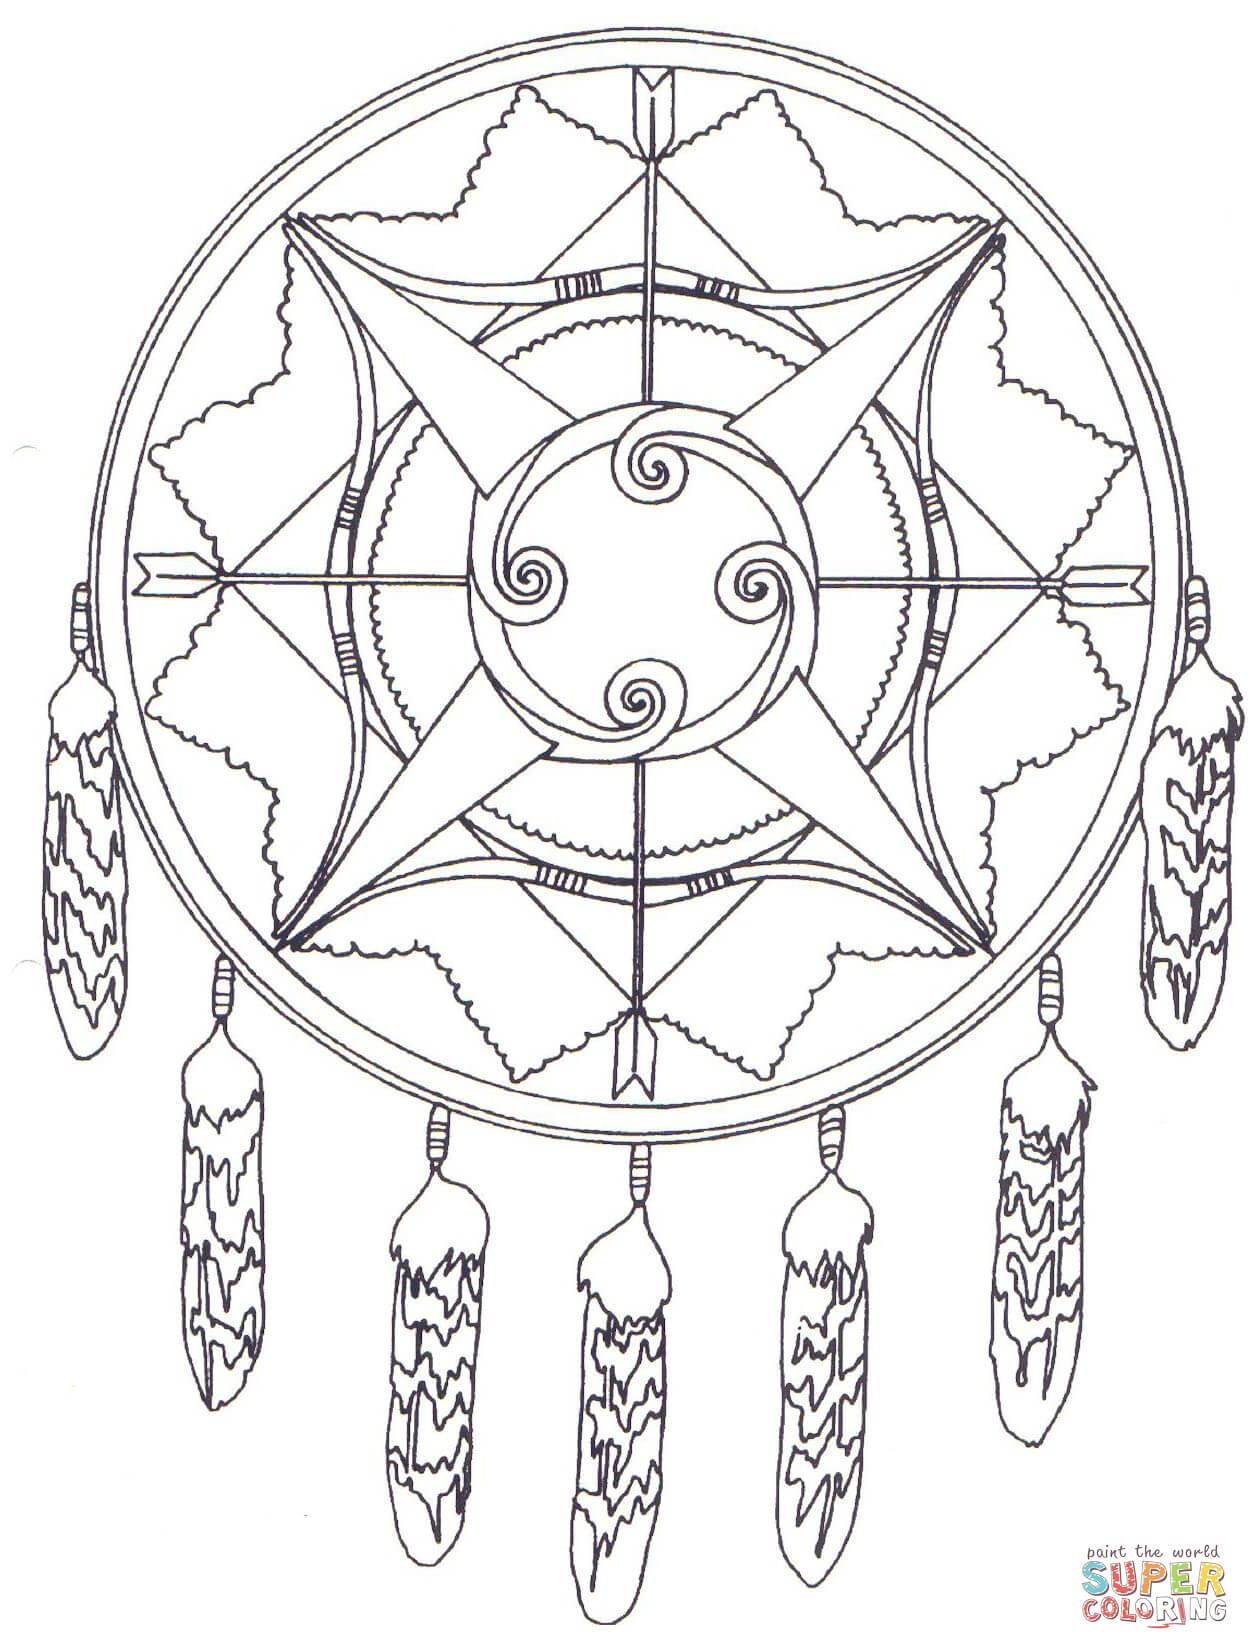 Uncategorized Native American Coloring Pages Free native american mandala with bows and arrows coloring pages jpg page from mandalas category